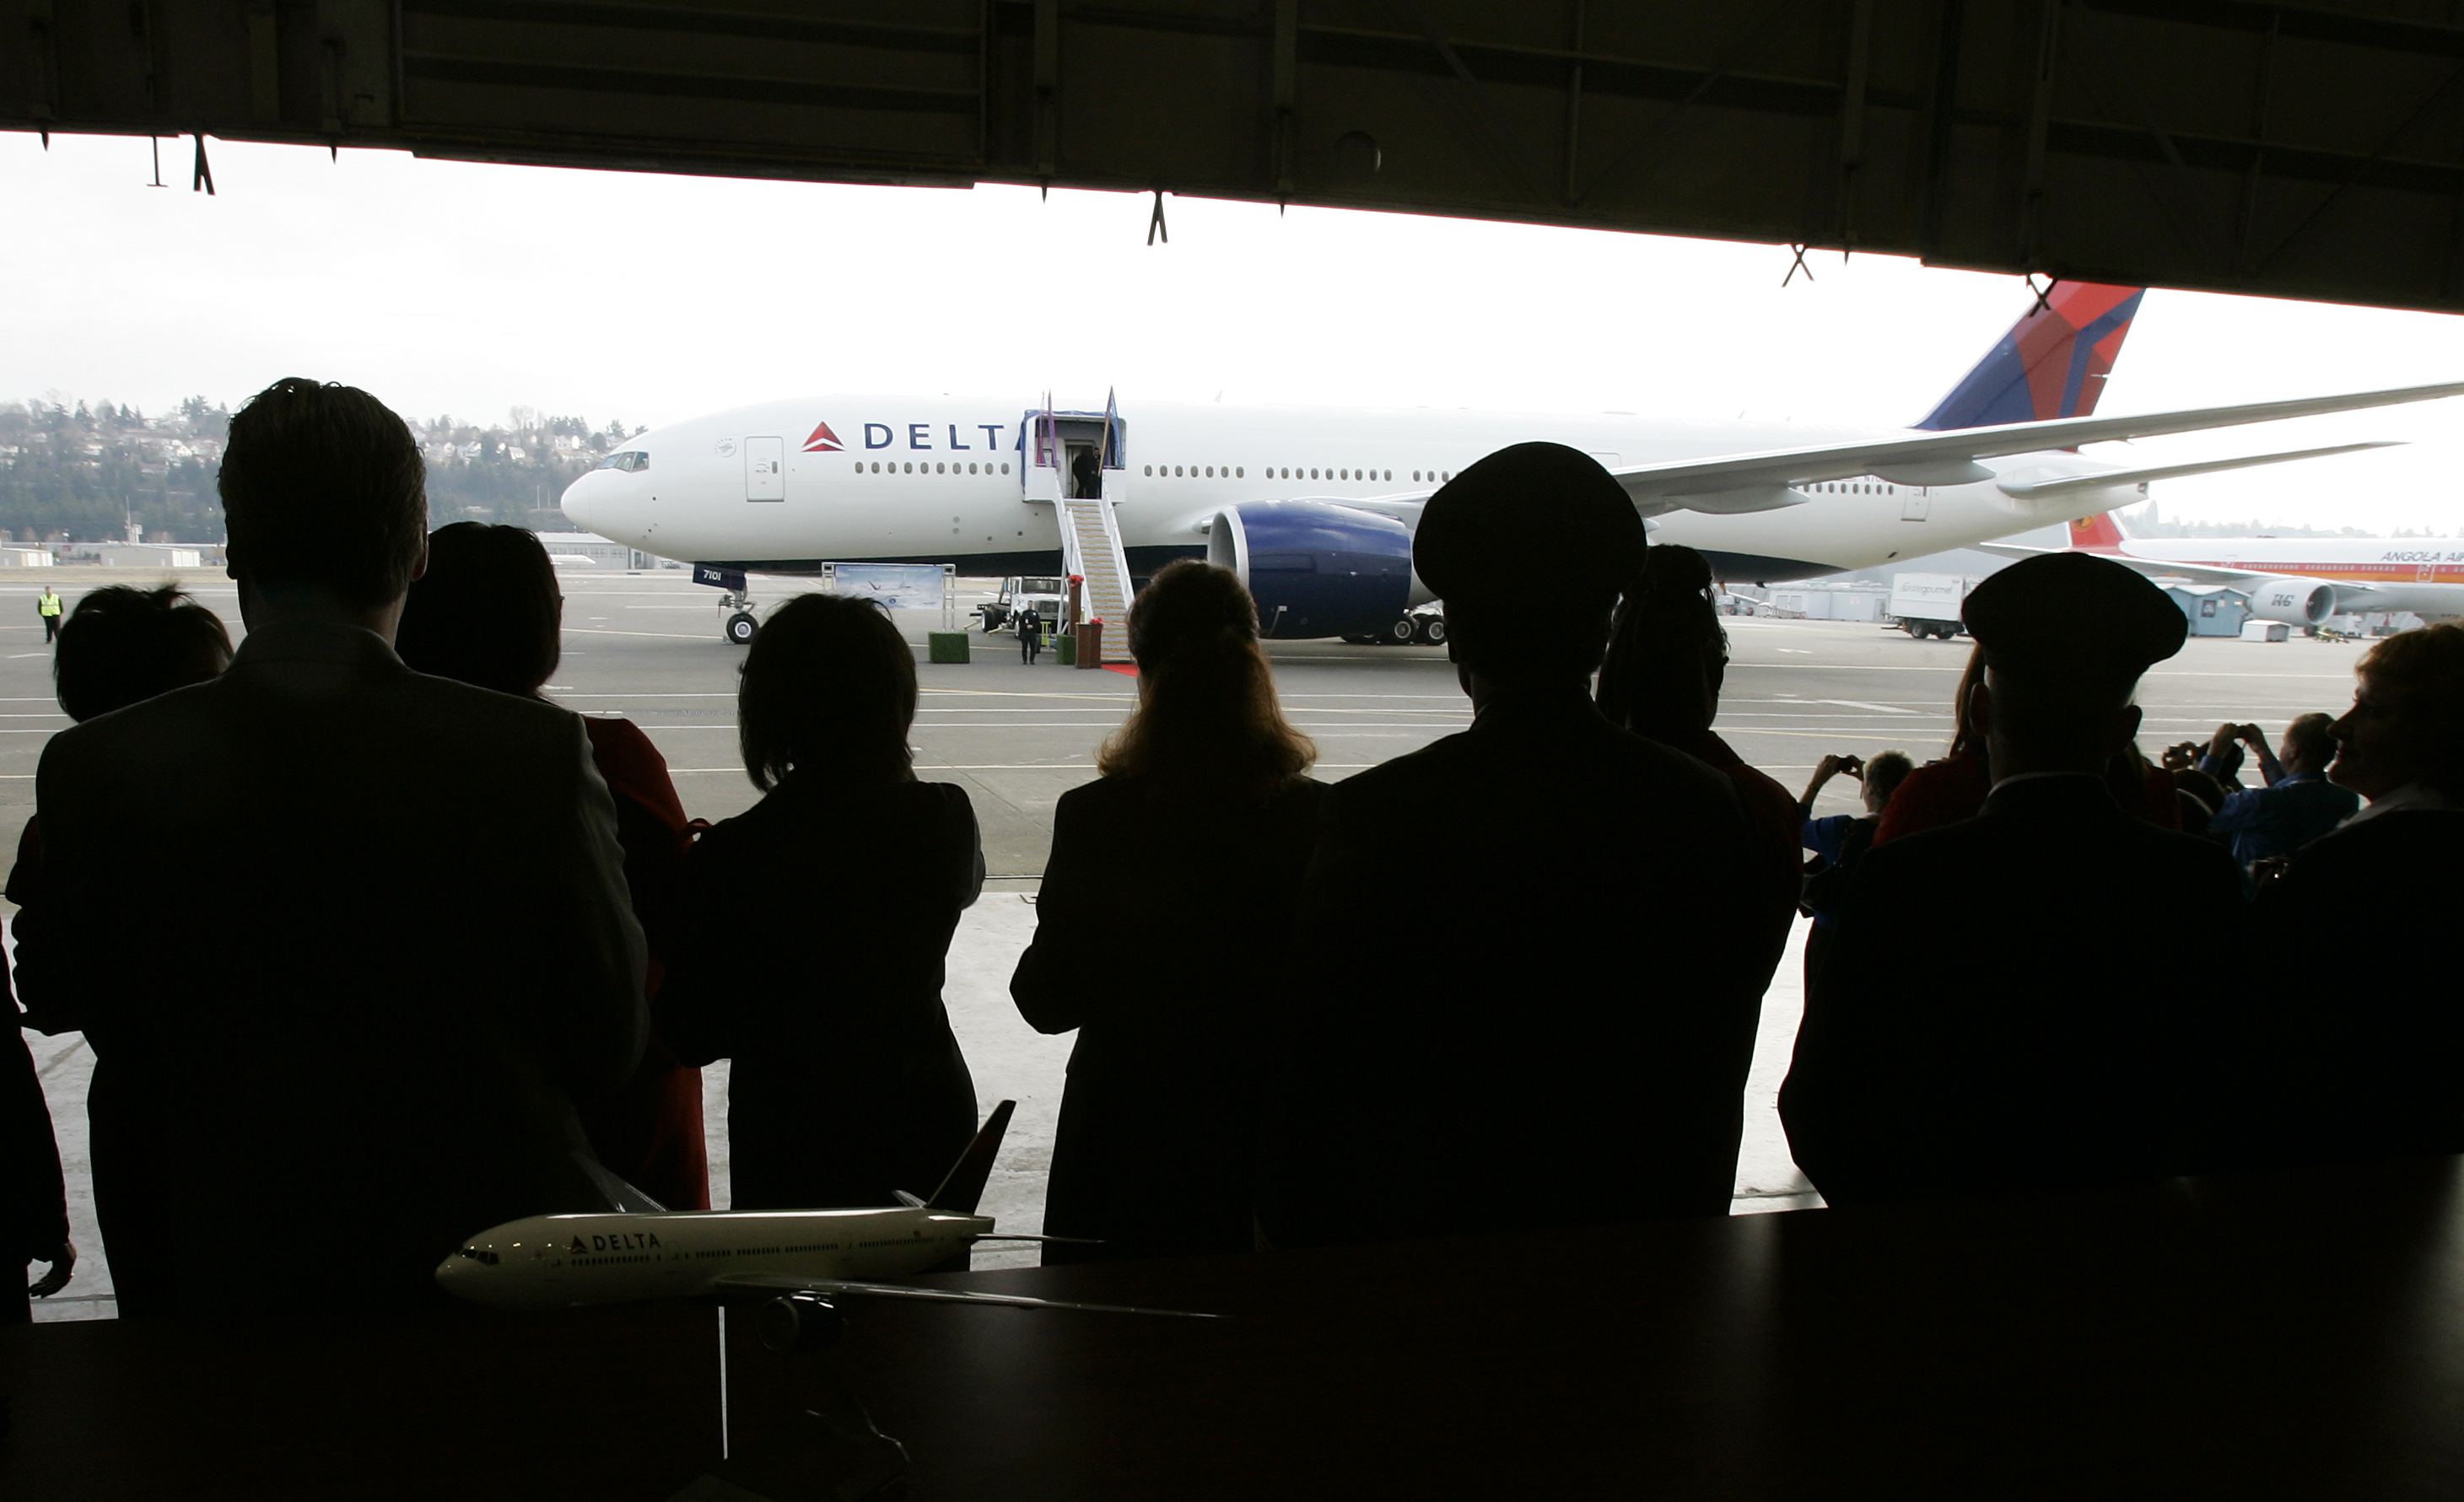 Executives and pilots from Delta Air Lines, Inc. look on at Boeing Field in Seattle as a hangar door opens to reveal the then new Boeing 777-200 LR airplane on February 29, 2008.